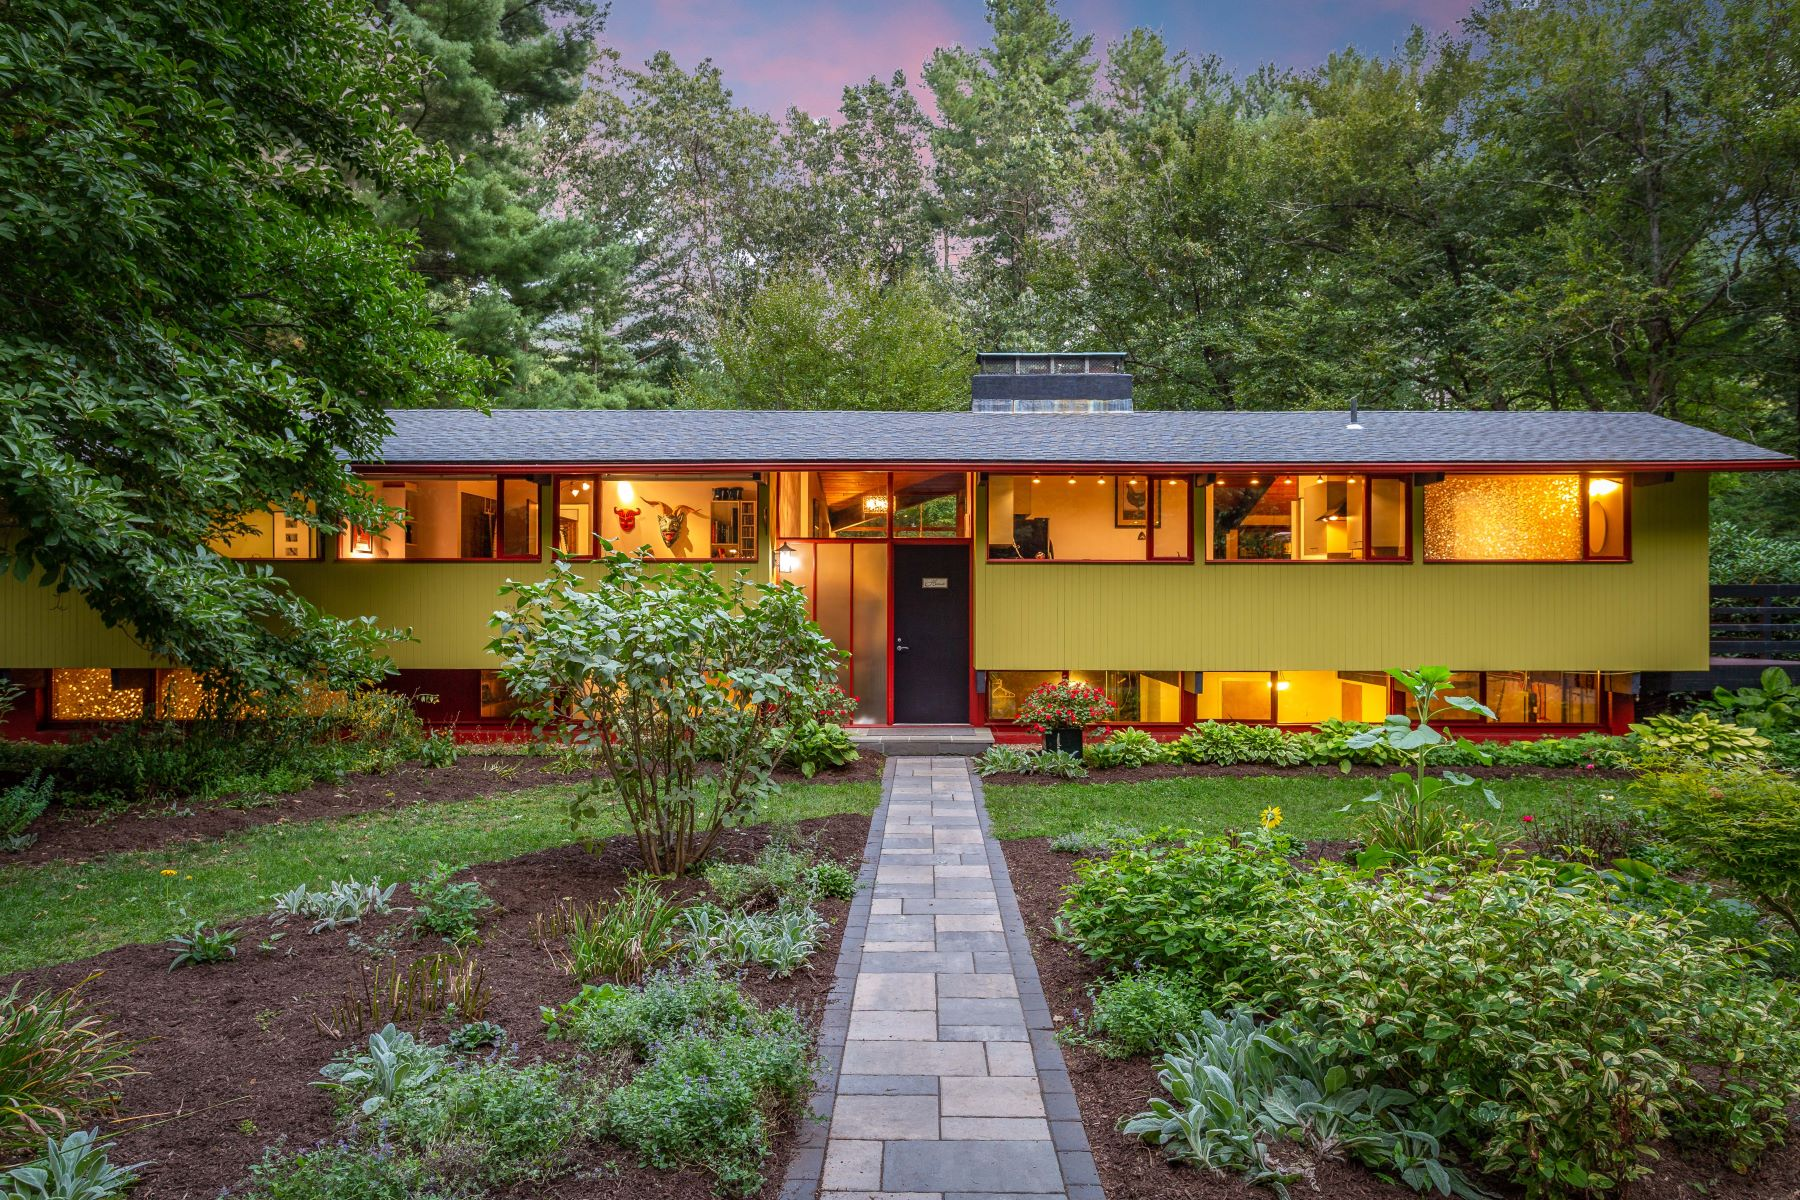 Single Family Homes for Sale at 142 Great Pond Road 142 Great Pond Rd Simsbury, Connecticut 06070 United States